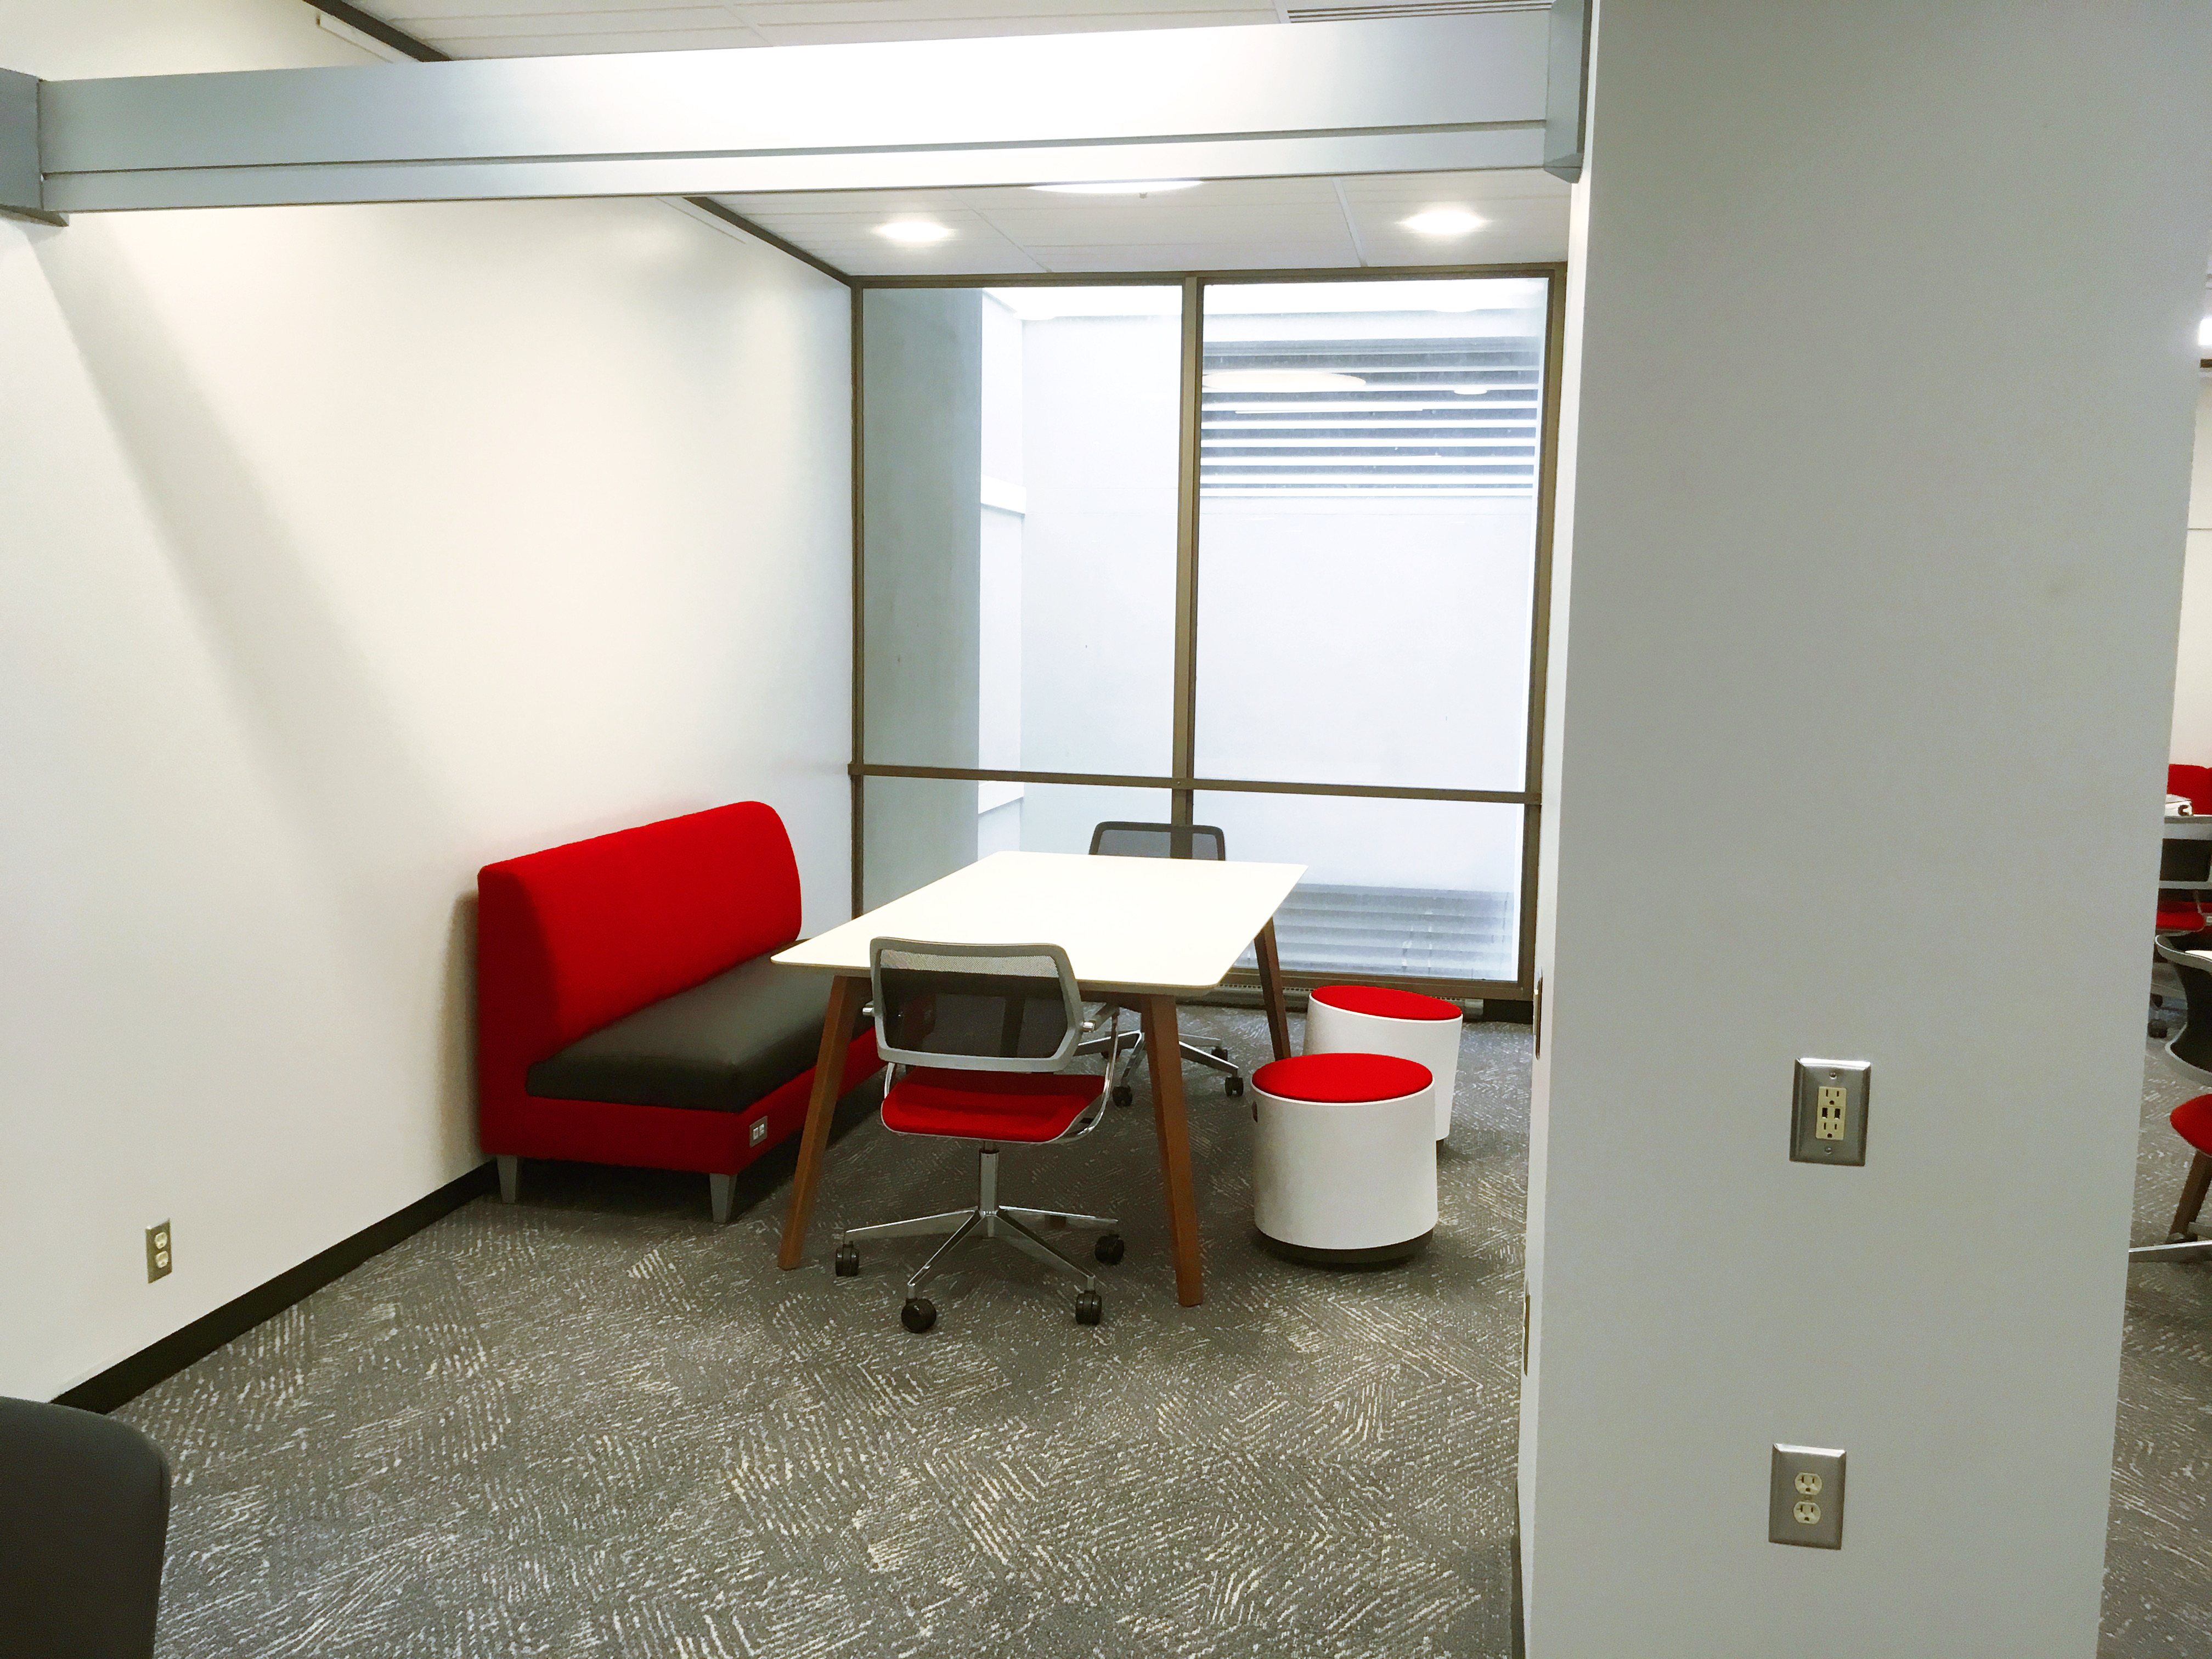 Study space on second floor in Learning Commons